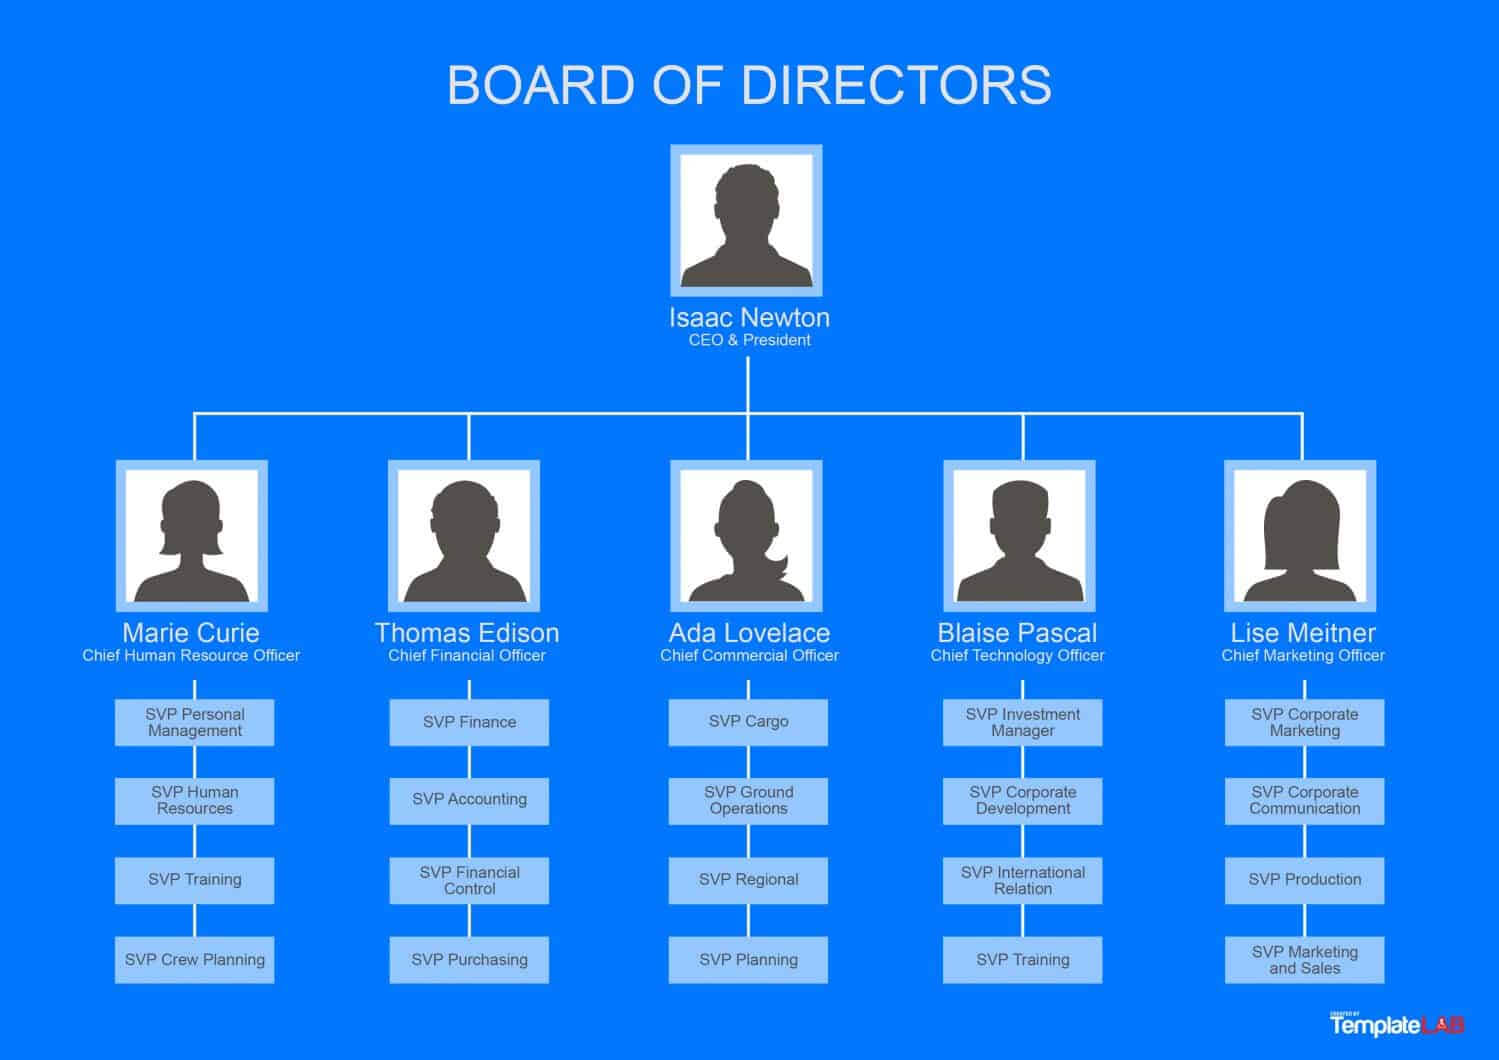 40 Organizational Chart Templates (Word, Excel, Powerpoint) With Free Blank Organizational Chart Template